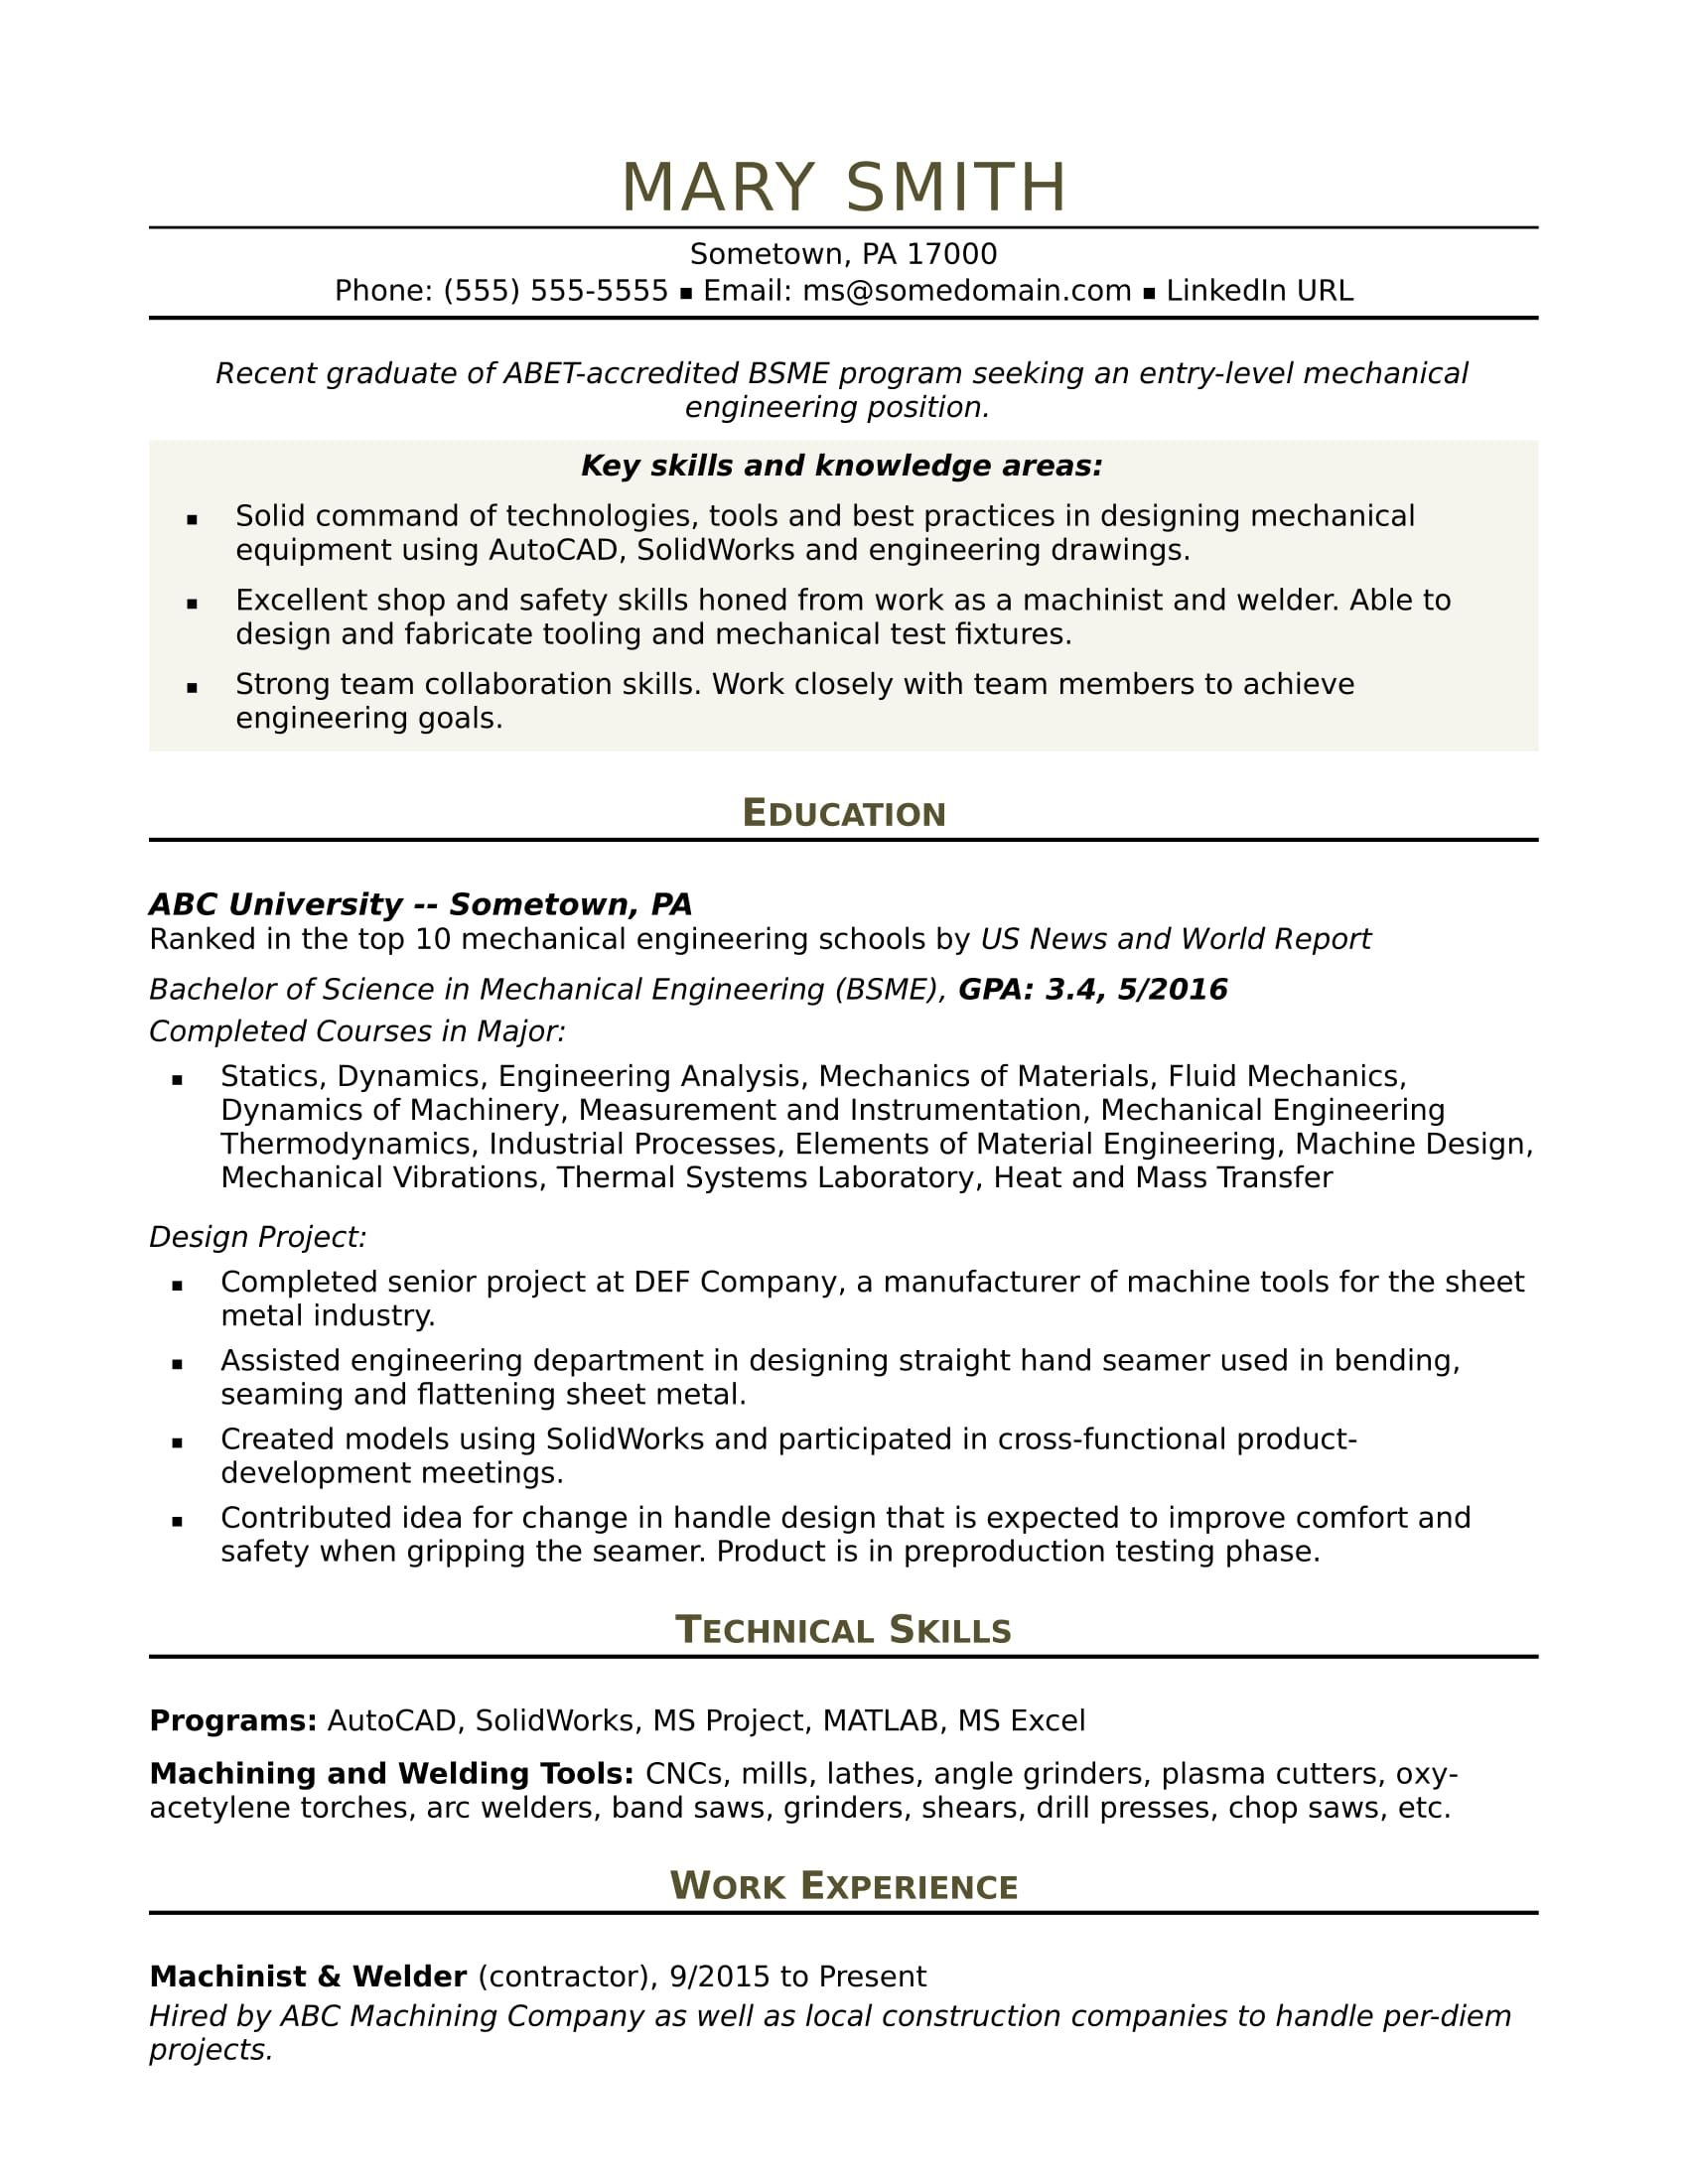 Sample Resume For An Entry Level Mechanical Engineer Engineering